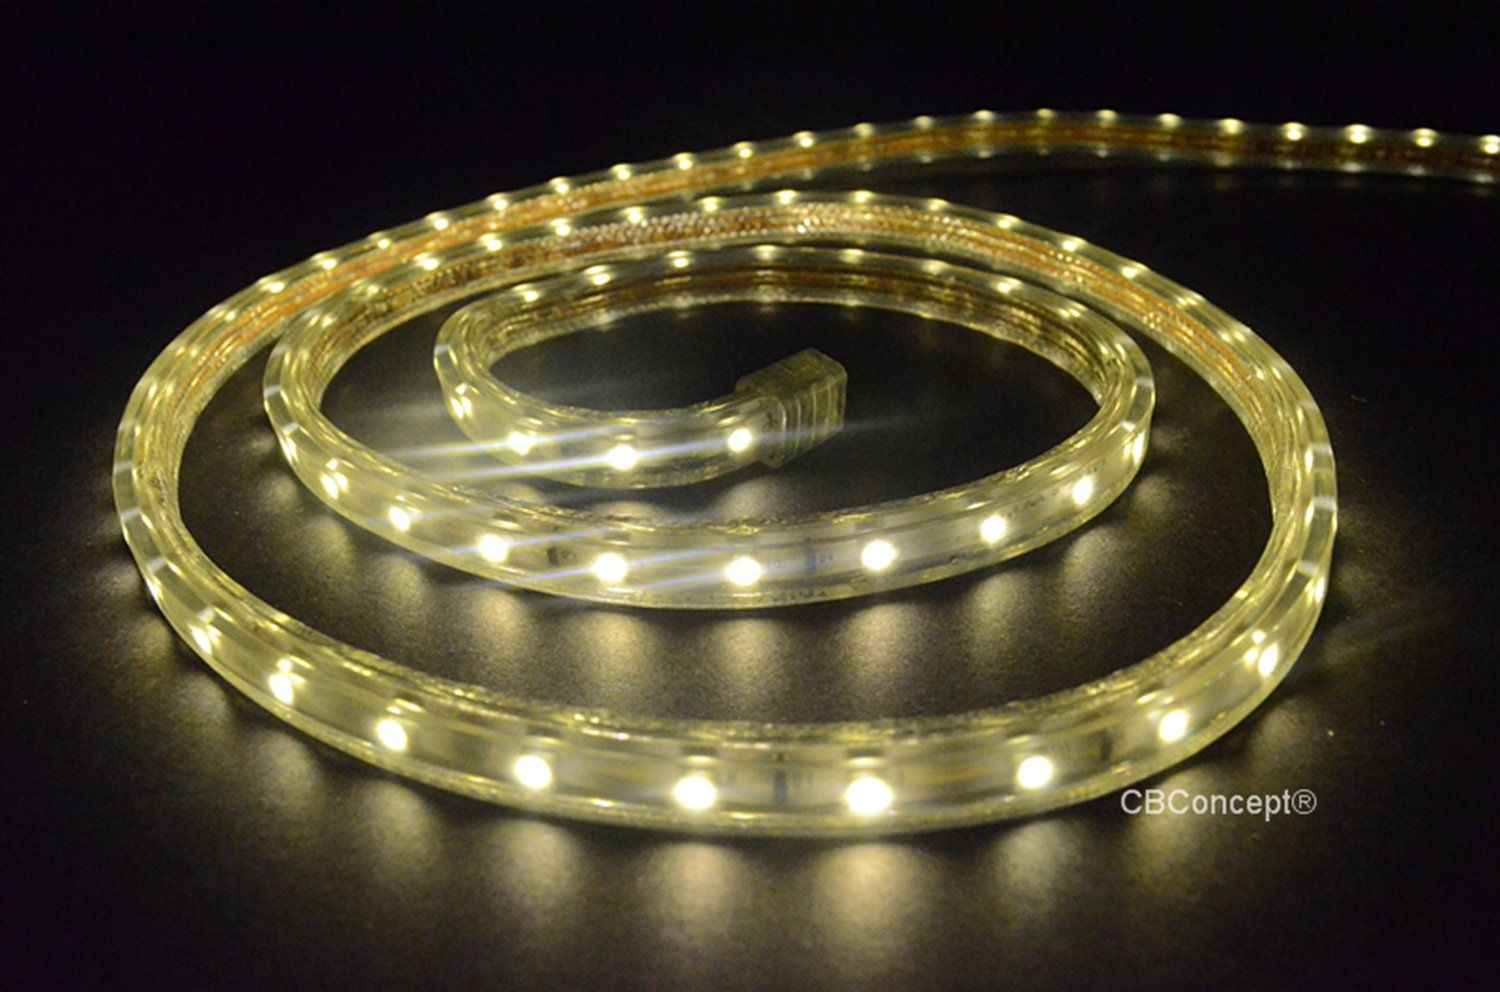 Cbconcept ul listed 33 feet 360 lumen 3000k warm white dimmable cbconcept ul listed 33 feet 360 lumen 3000k warm white dimmable 110 120v ac flexible flat led strip rope light 60 units 3528 smd leds aloadofball Image collections